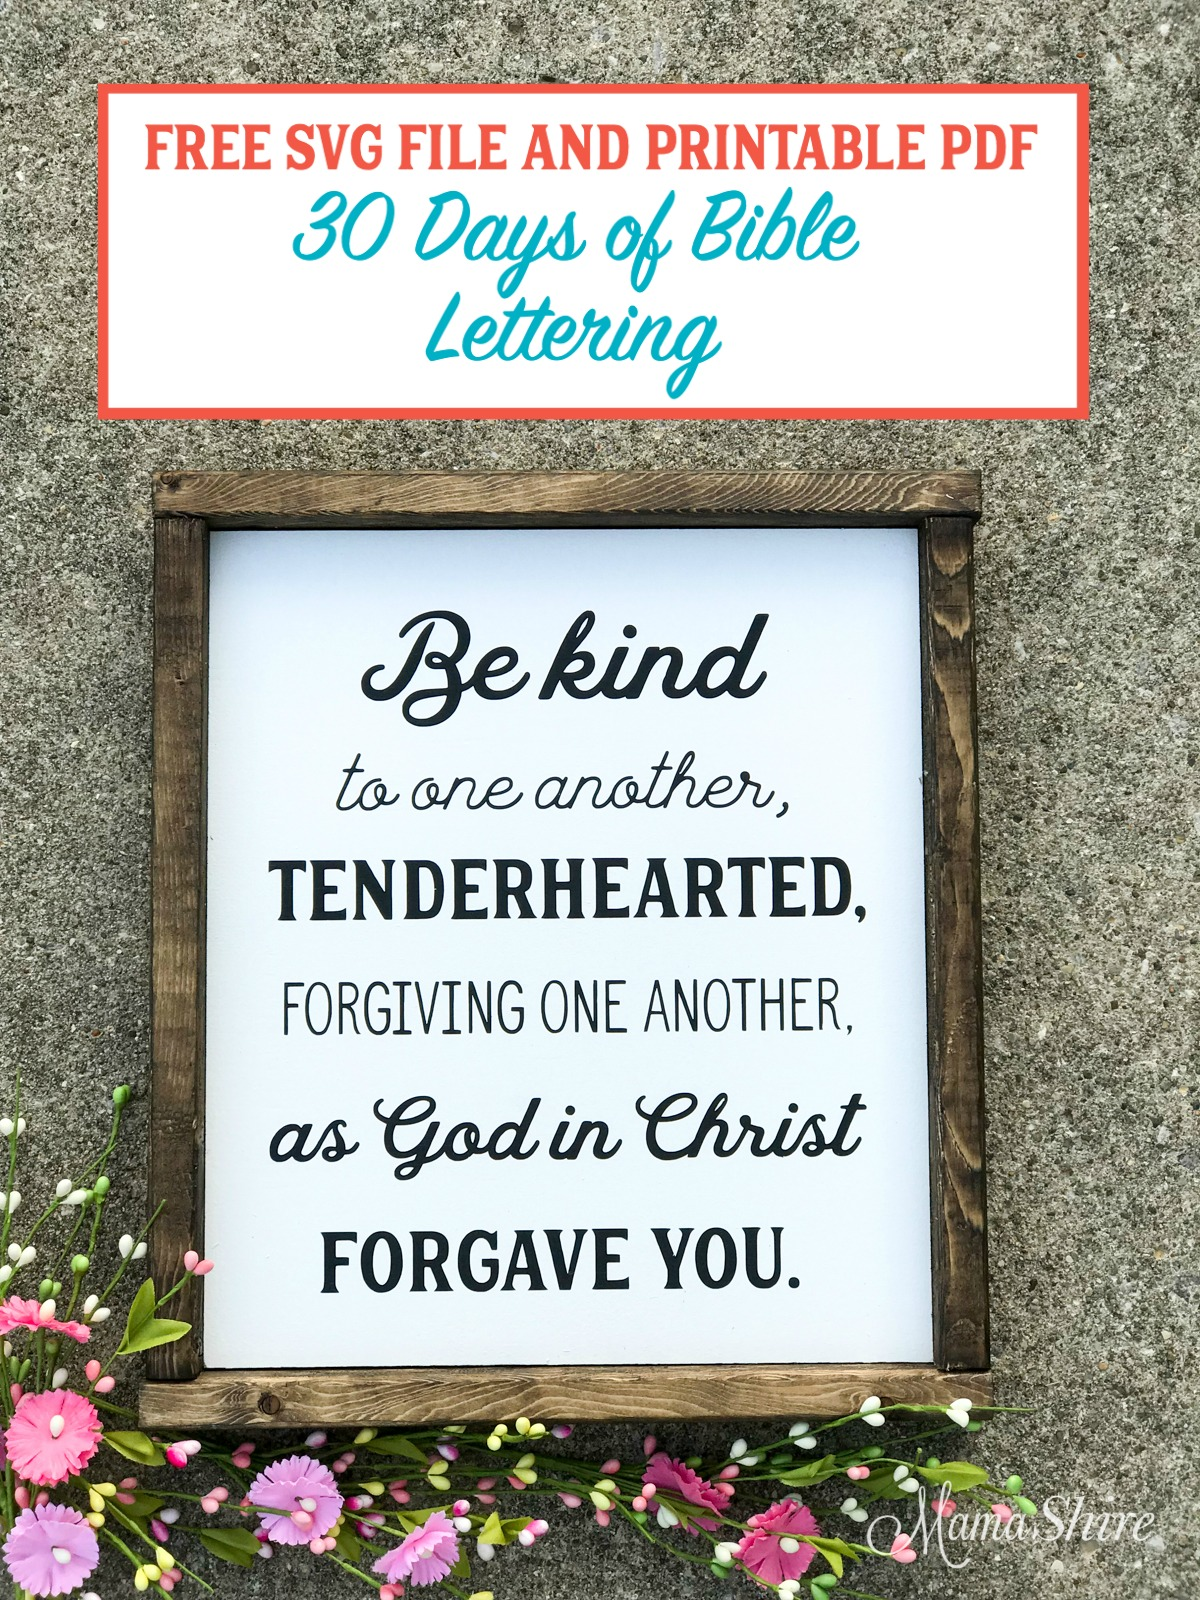 Be kind of to one another wood sign.